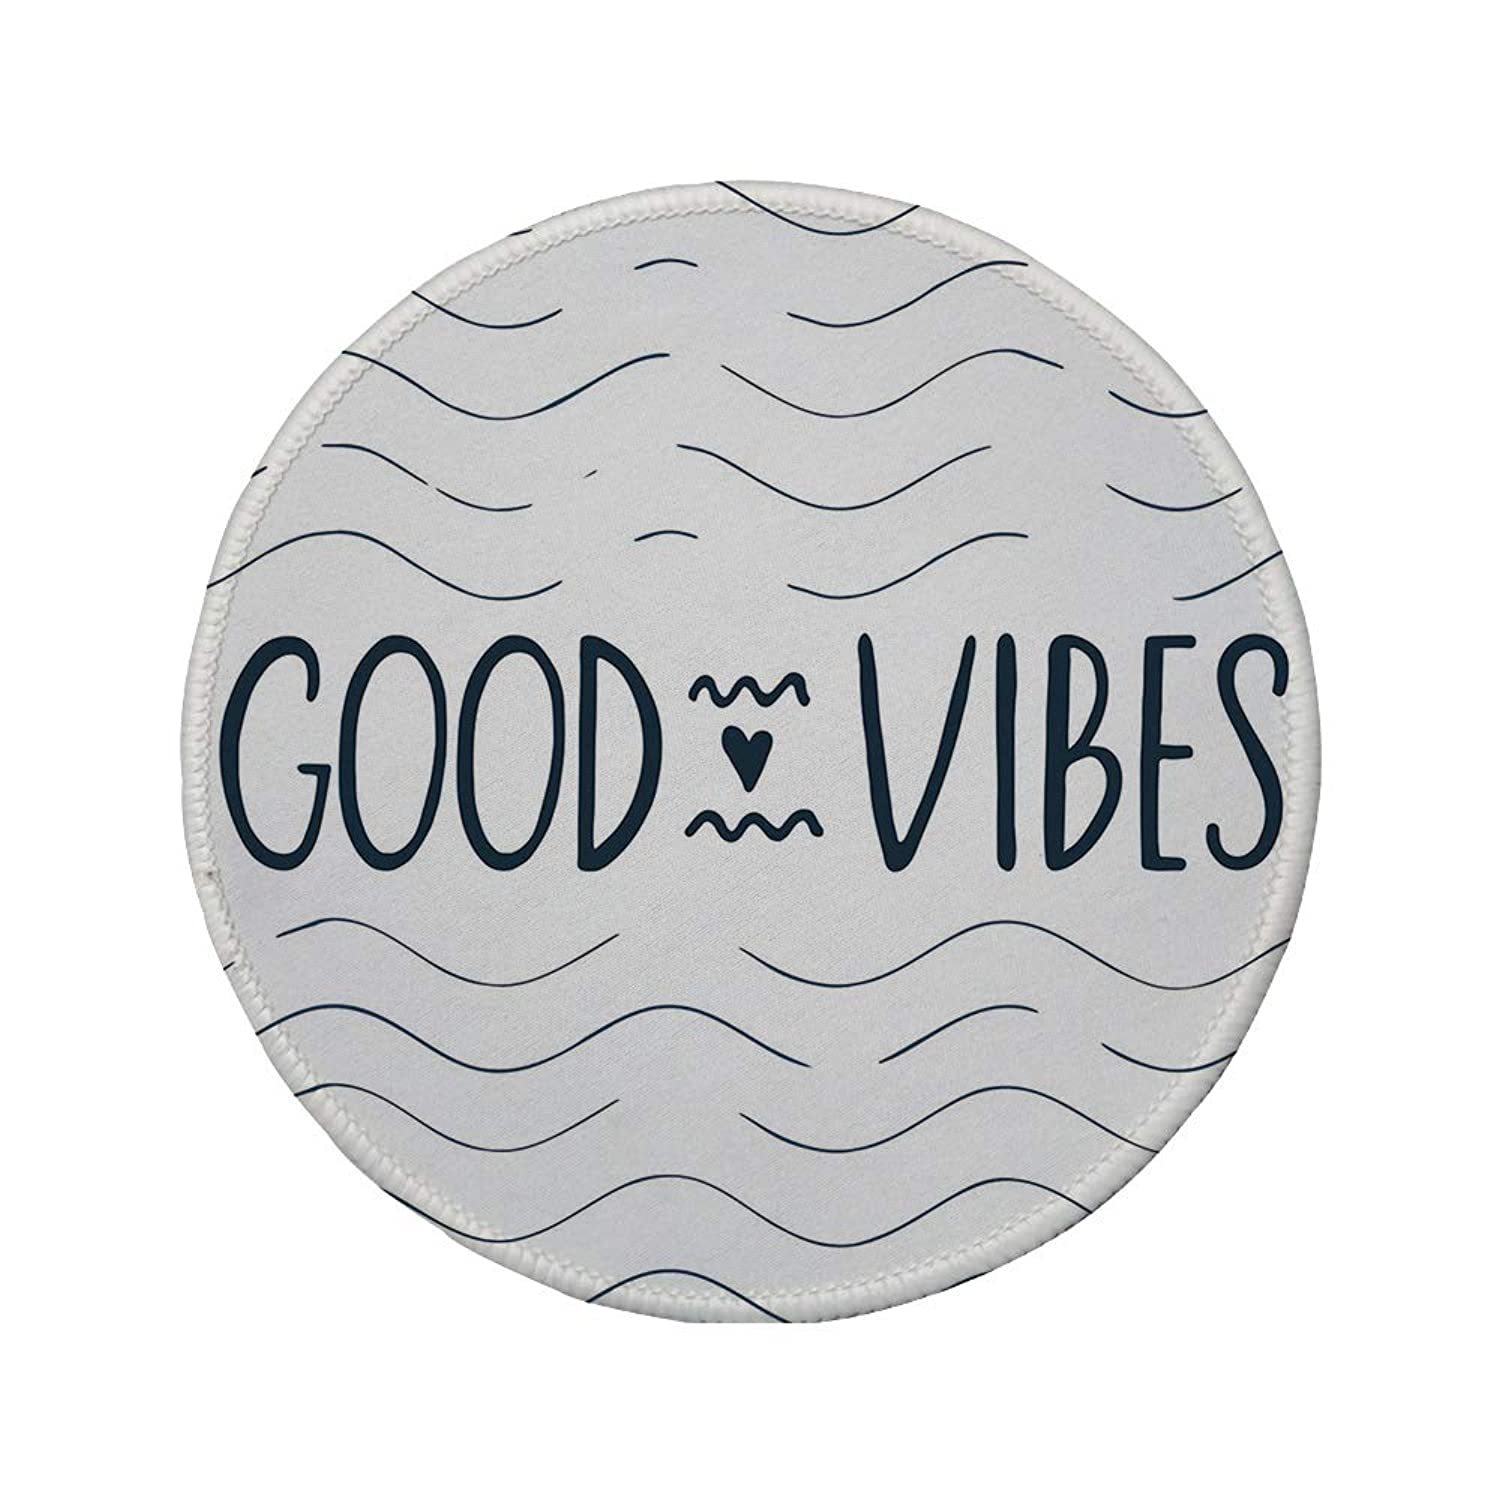 Non-Slip Rubber Round Mouse Pad,Good Vibes,Abstract Sea Inspired Background Waves Modern Typography Cute Heart Shape Decorative,Dark Blue White,7.87